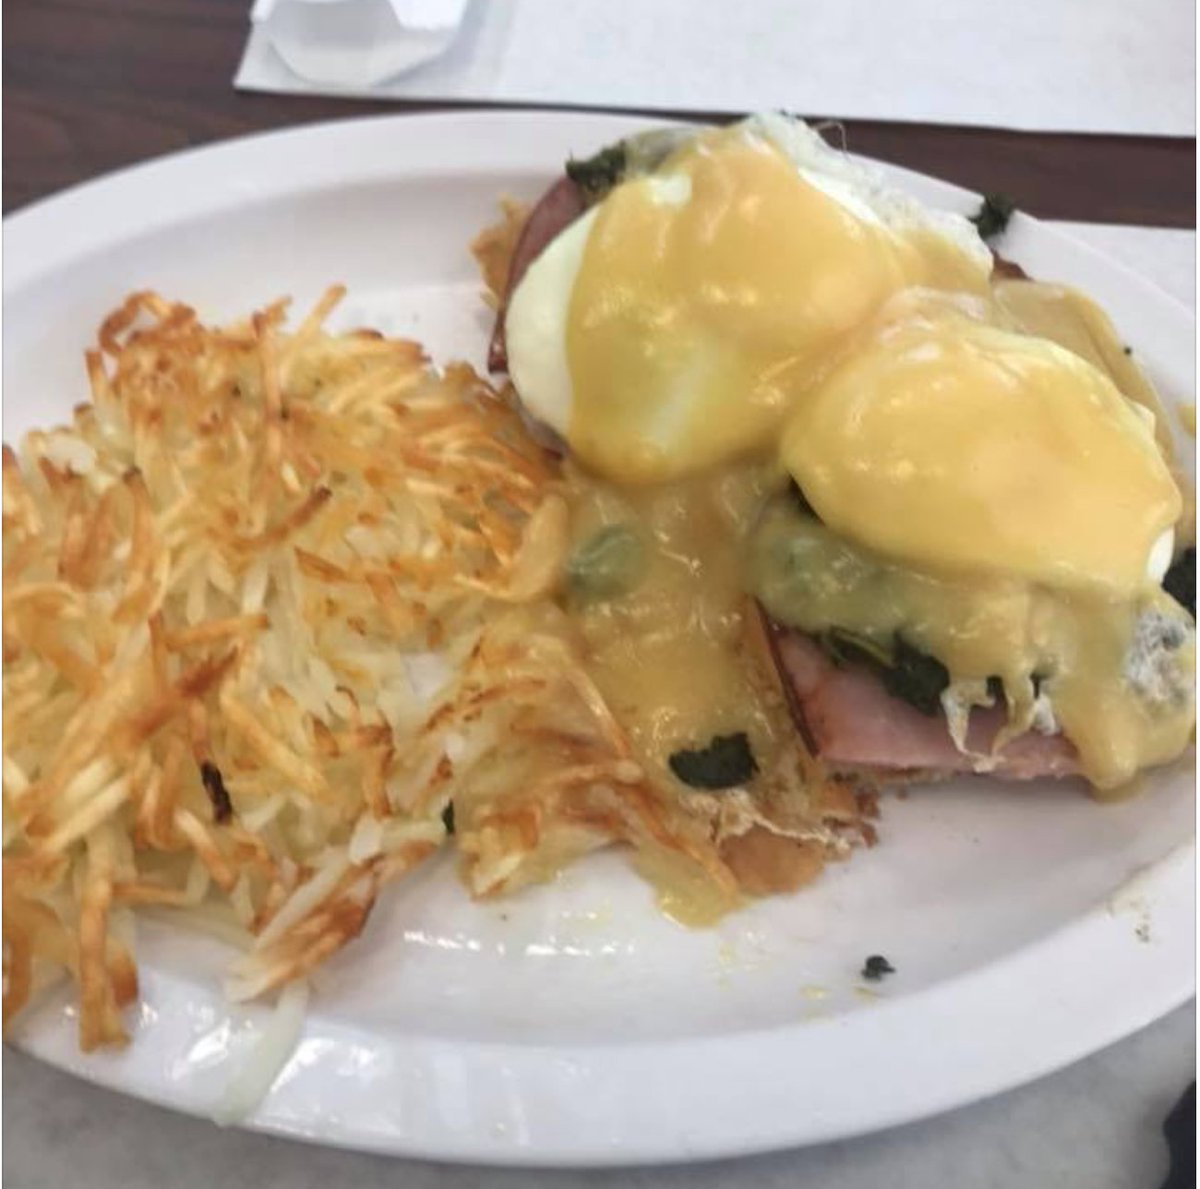 Eggs Benedict for breakfast or lunch at C's Waffles! Do you like breakfast for lunch?  #breakfast #cswaffles #eggsbenedict #hashbrownspic.twitter.com/mImVBiYOEp